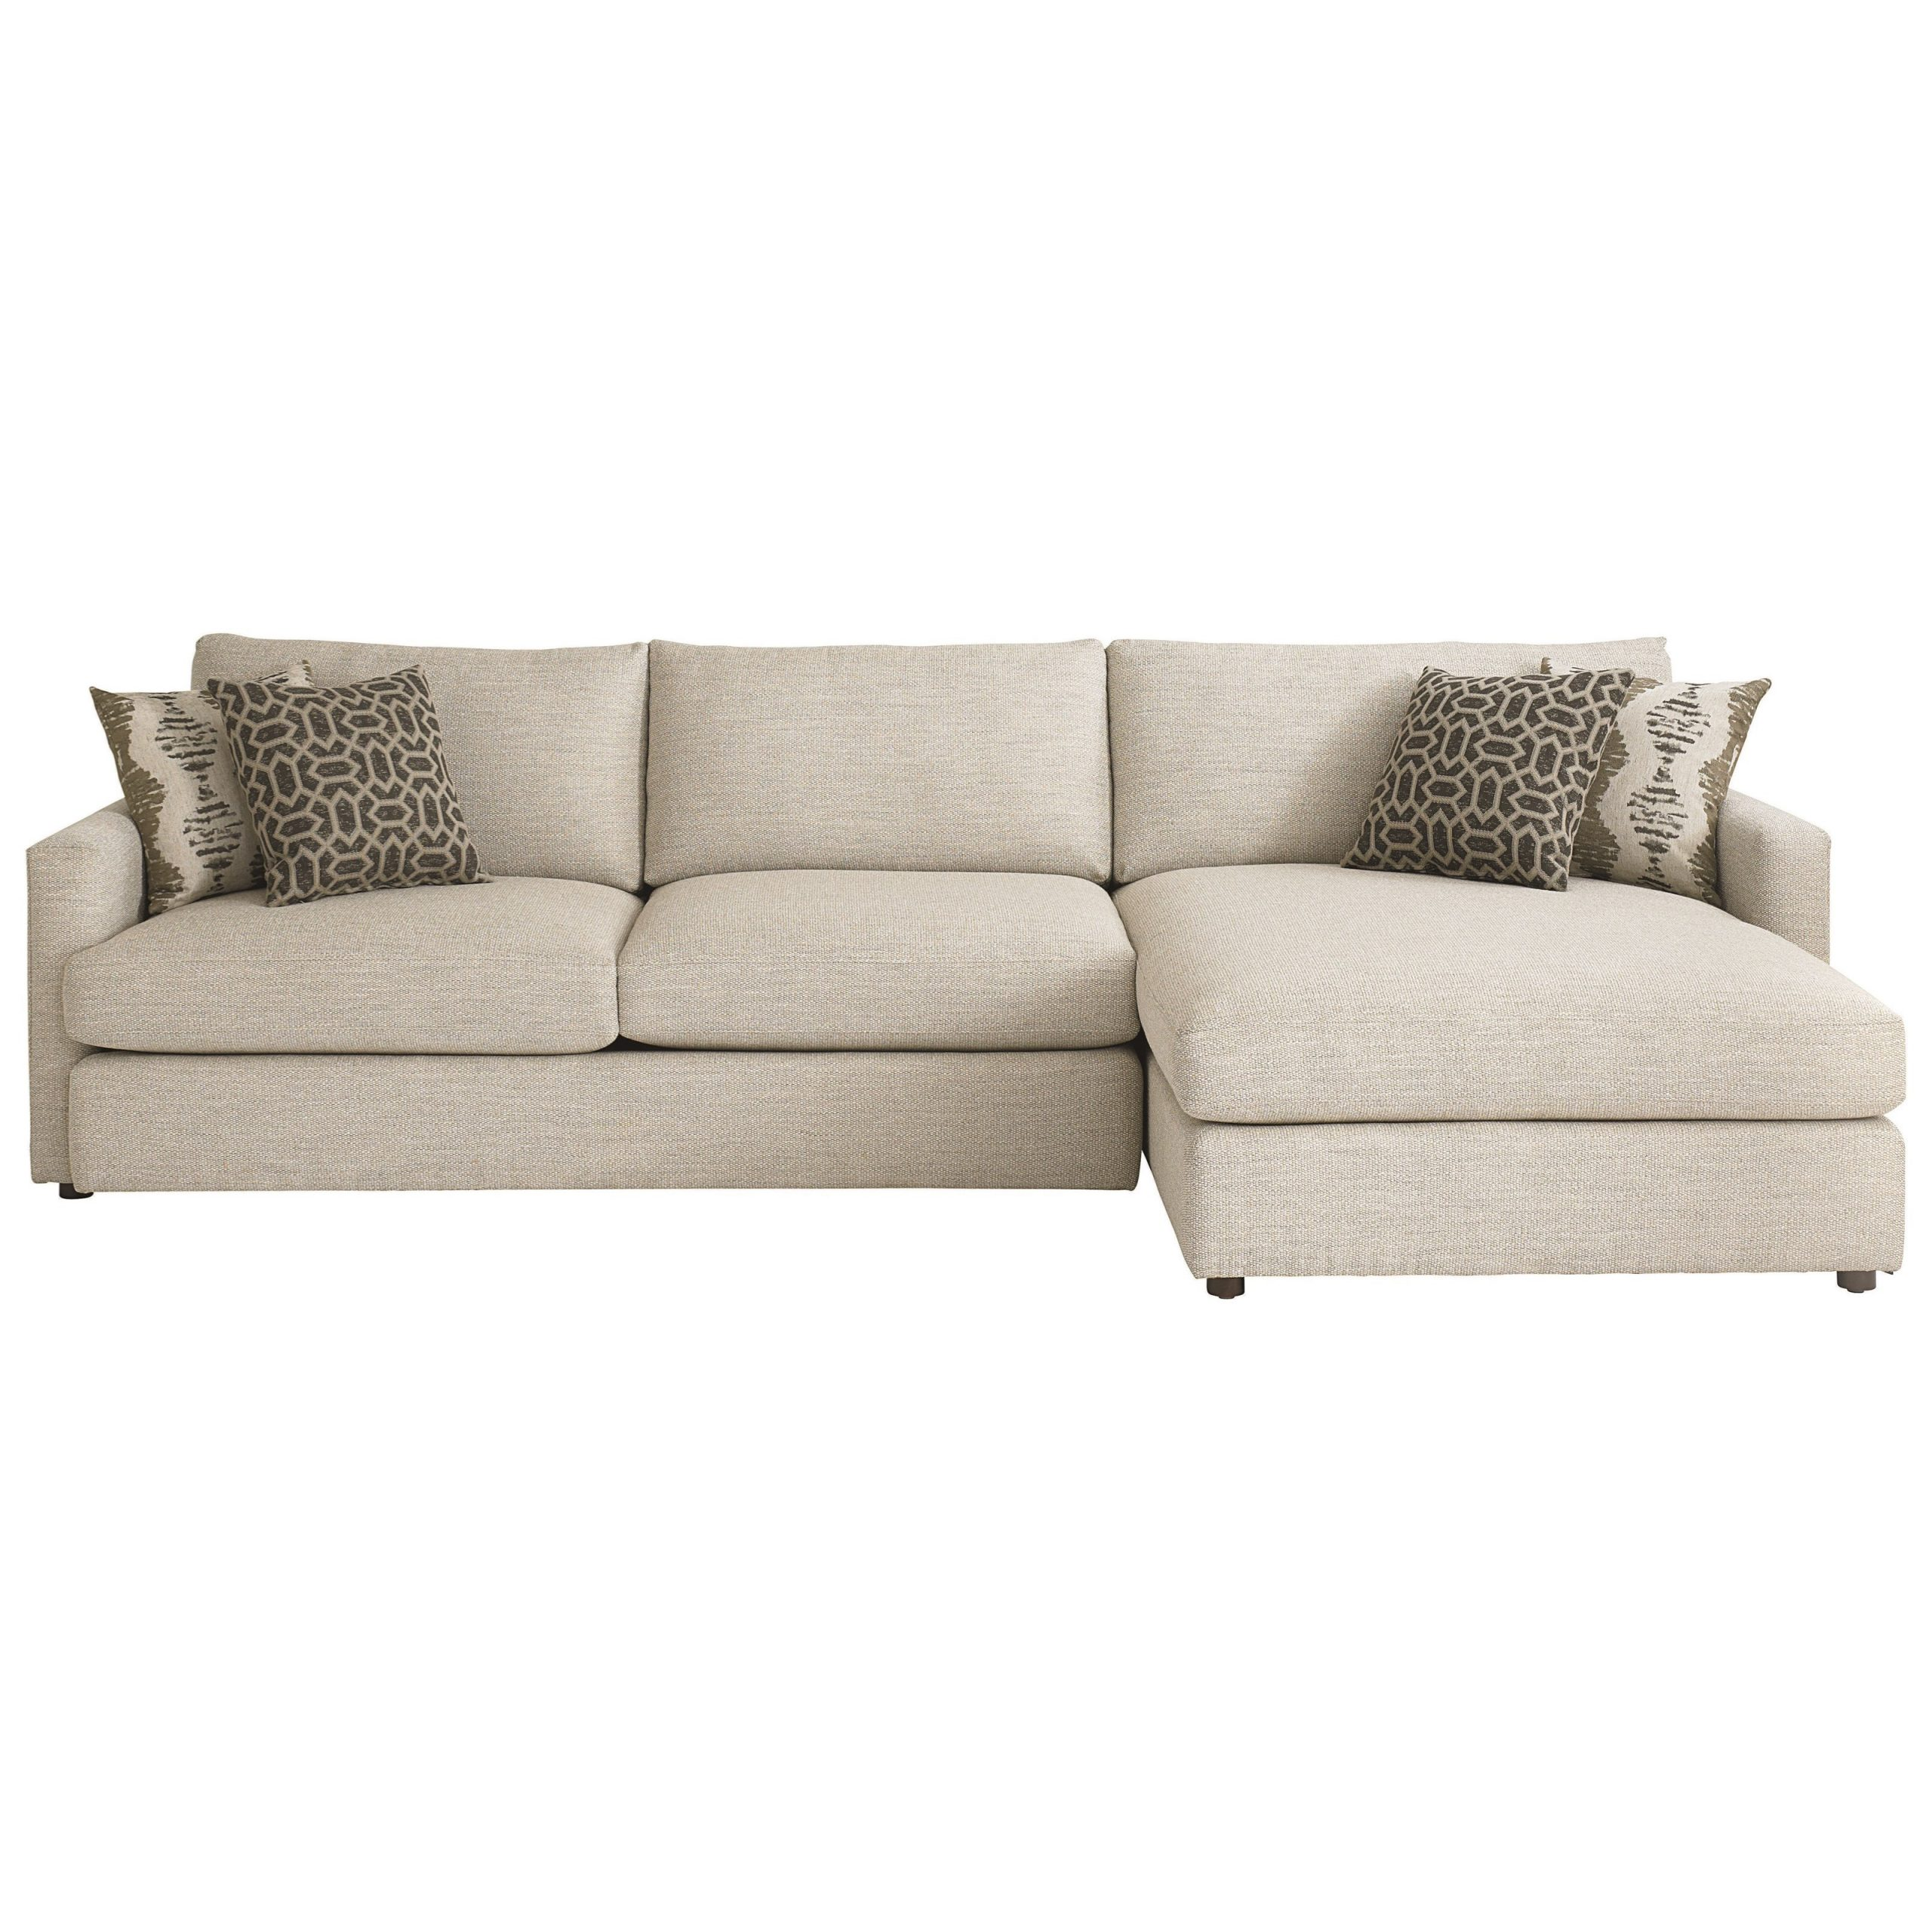 Widely Used Hannah Left Sectional Sofas Intended For Bassett Allure Contemporary Sectional With Left Arm Facing (View 12 of 20)